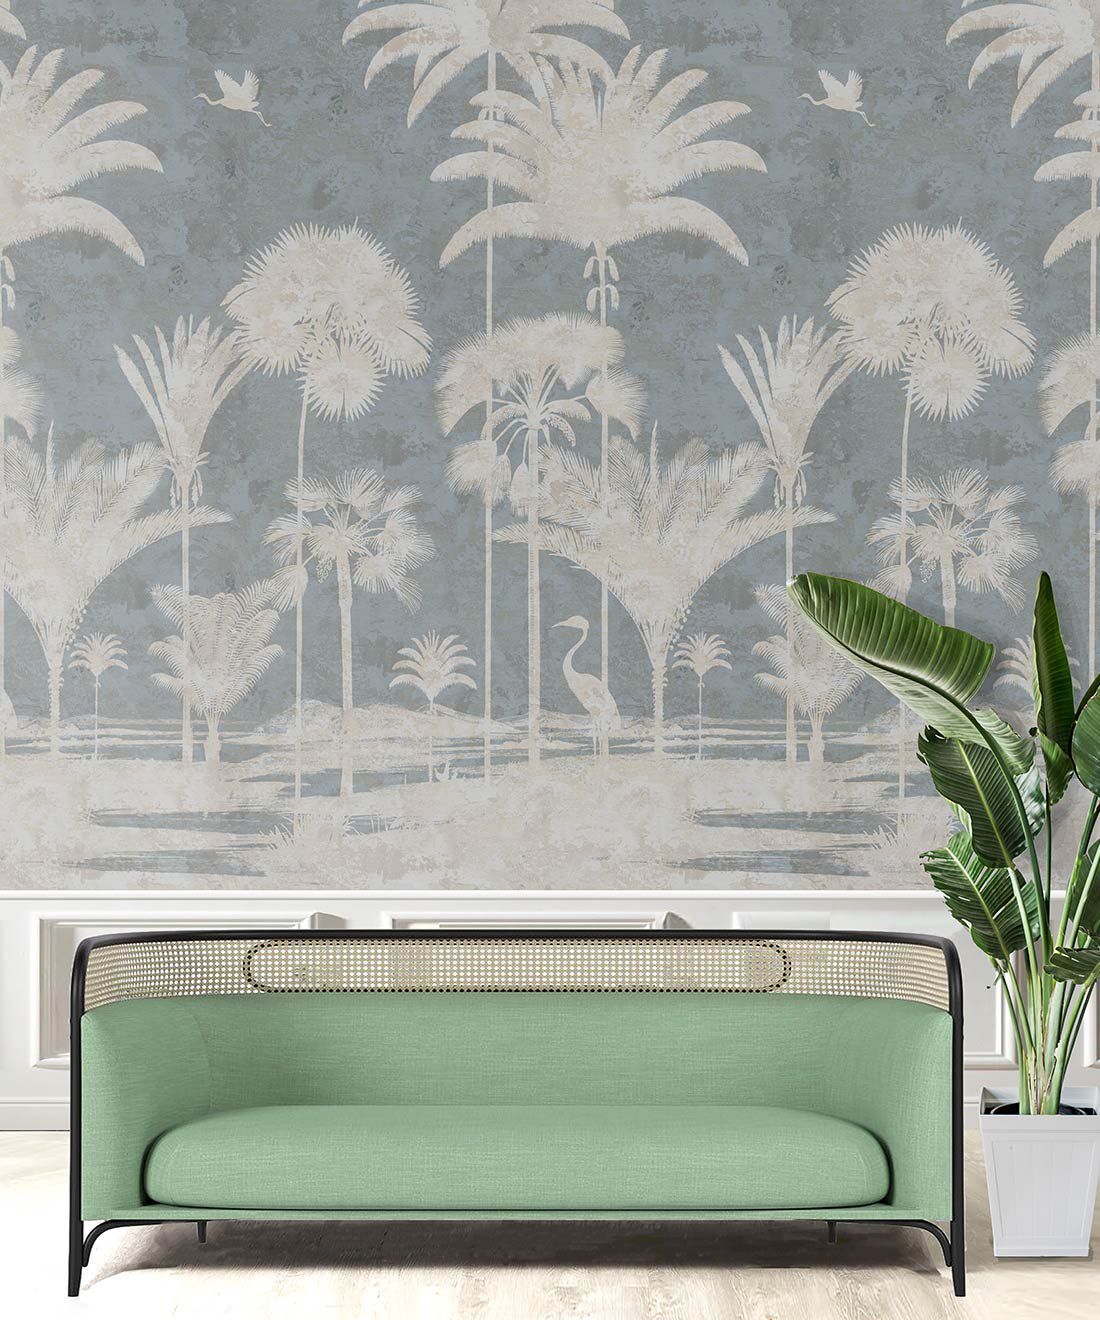 Shadow Palms Wallpaper Mural •Bethany Linz • Palm Tree Mural • Blue • Insitu with mint green sofa